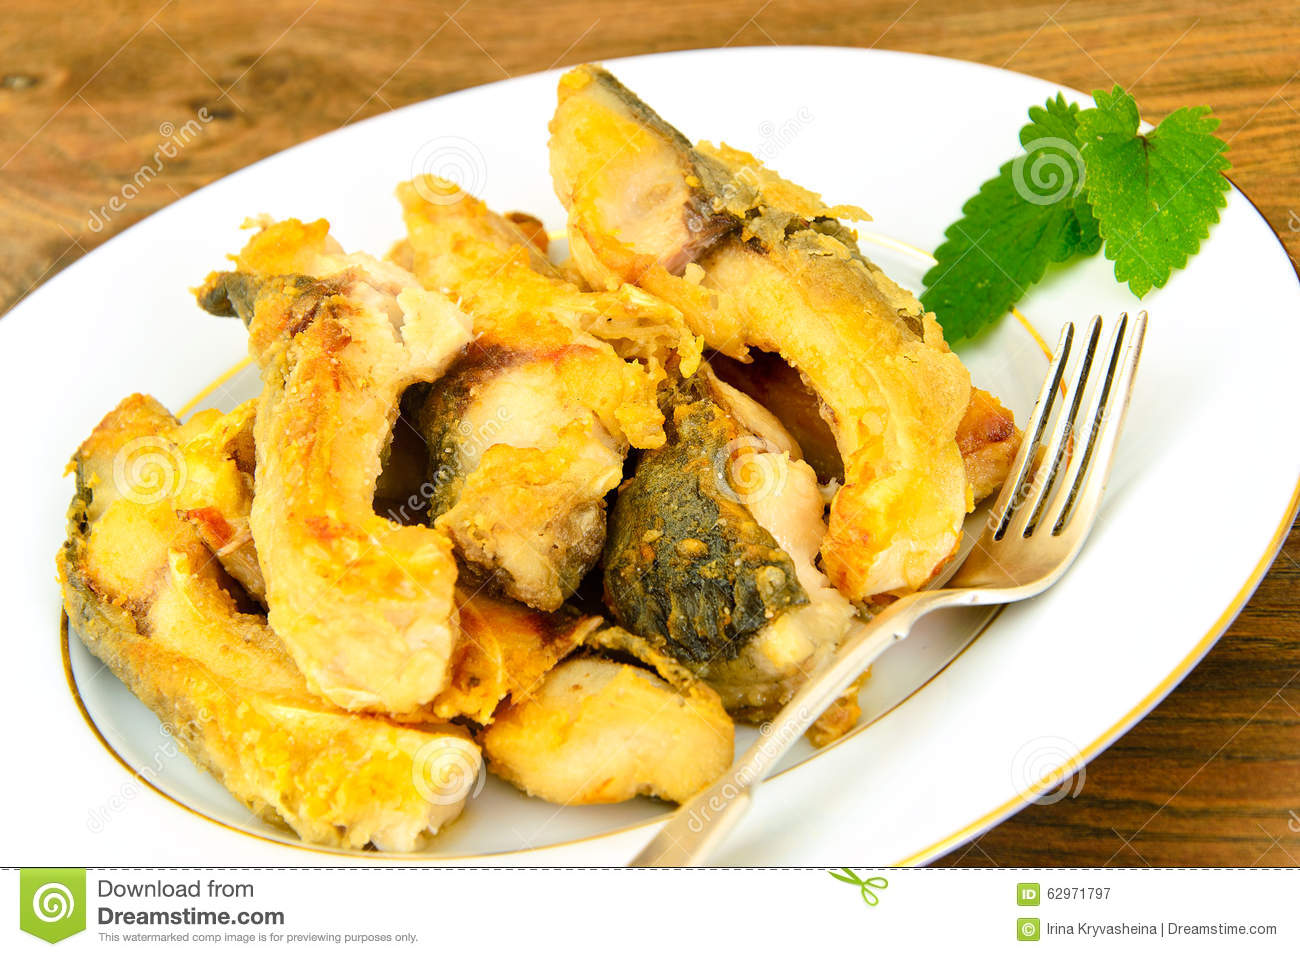 Healthy and diet food fried fish carp stock photo image for Is fried fish healthy